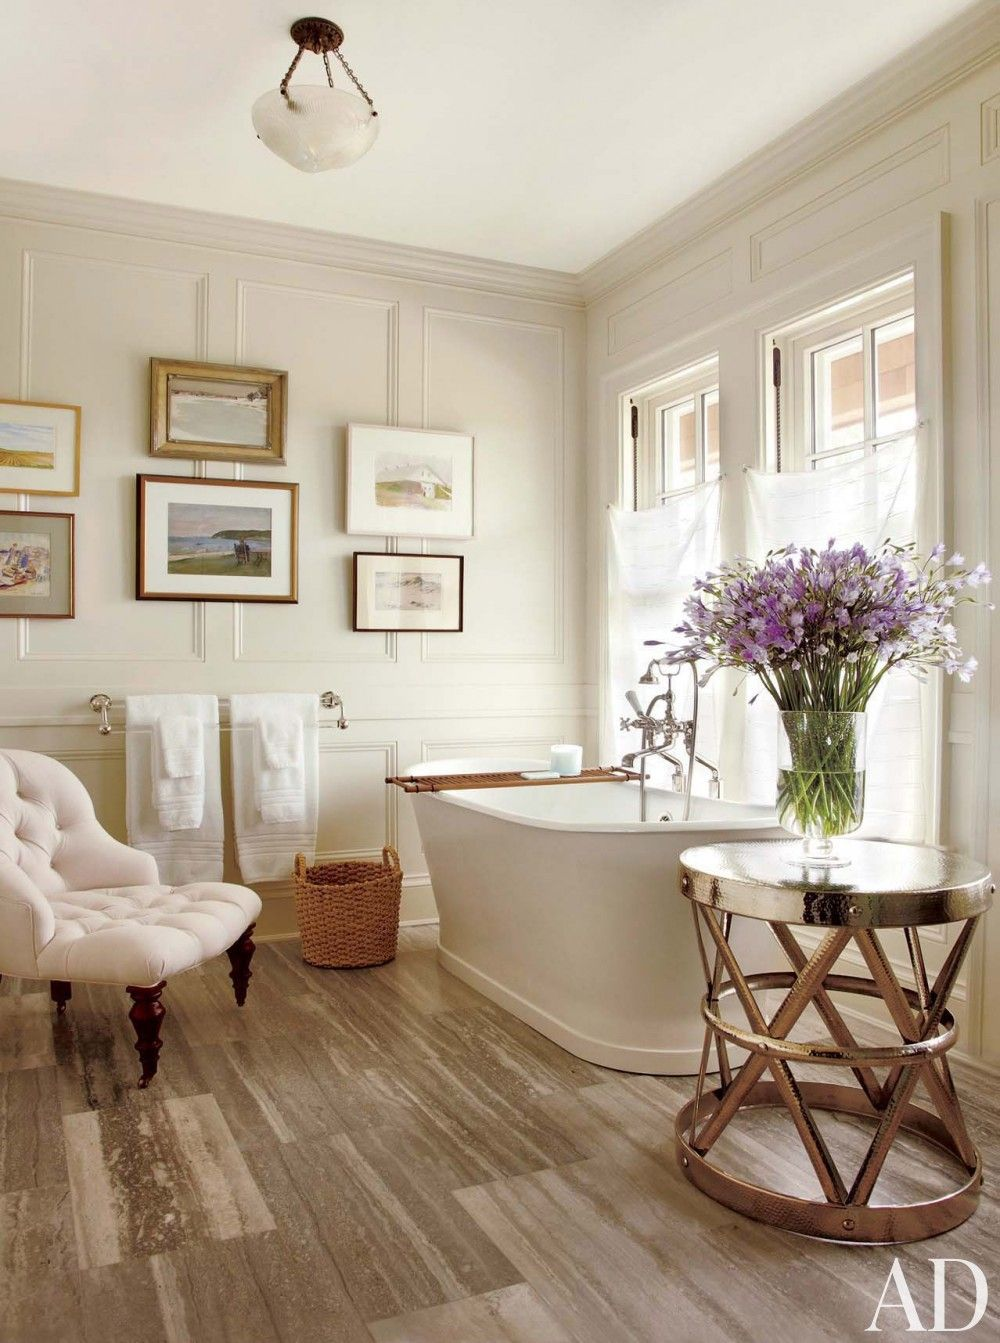 Lovely Contemporary Bathroom By Carrier And Company Interiors And John David Rose  In Southampton, New York